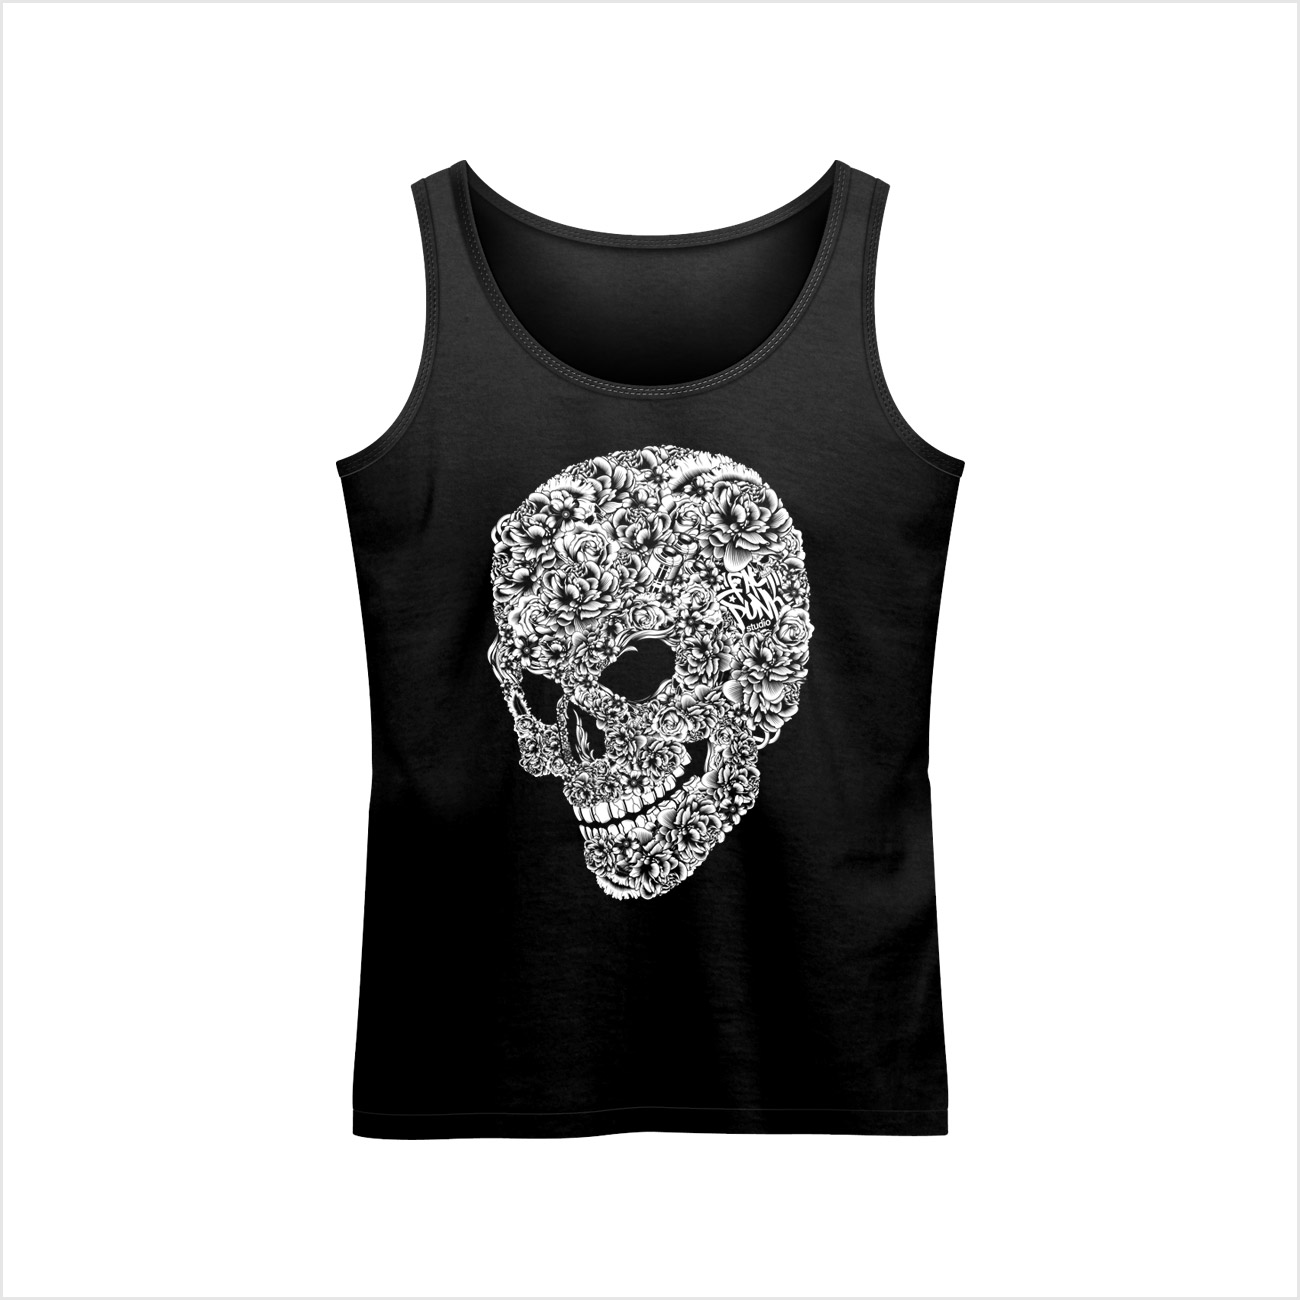 fat-punk-studio-flower-skull-vest-top-black-01